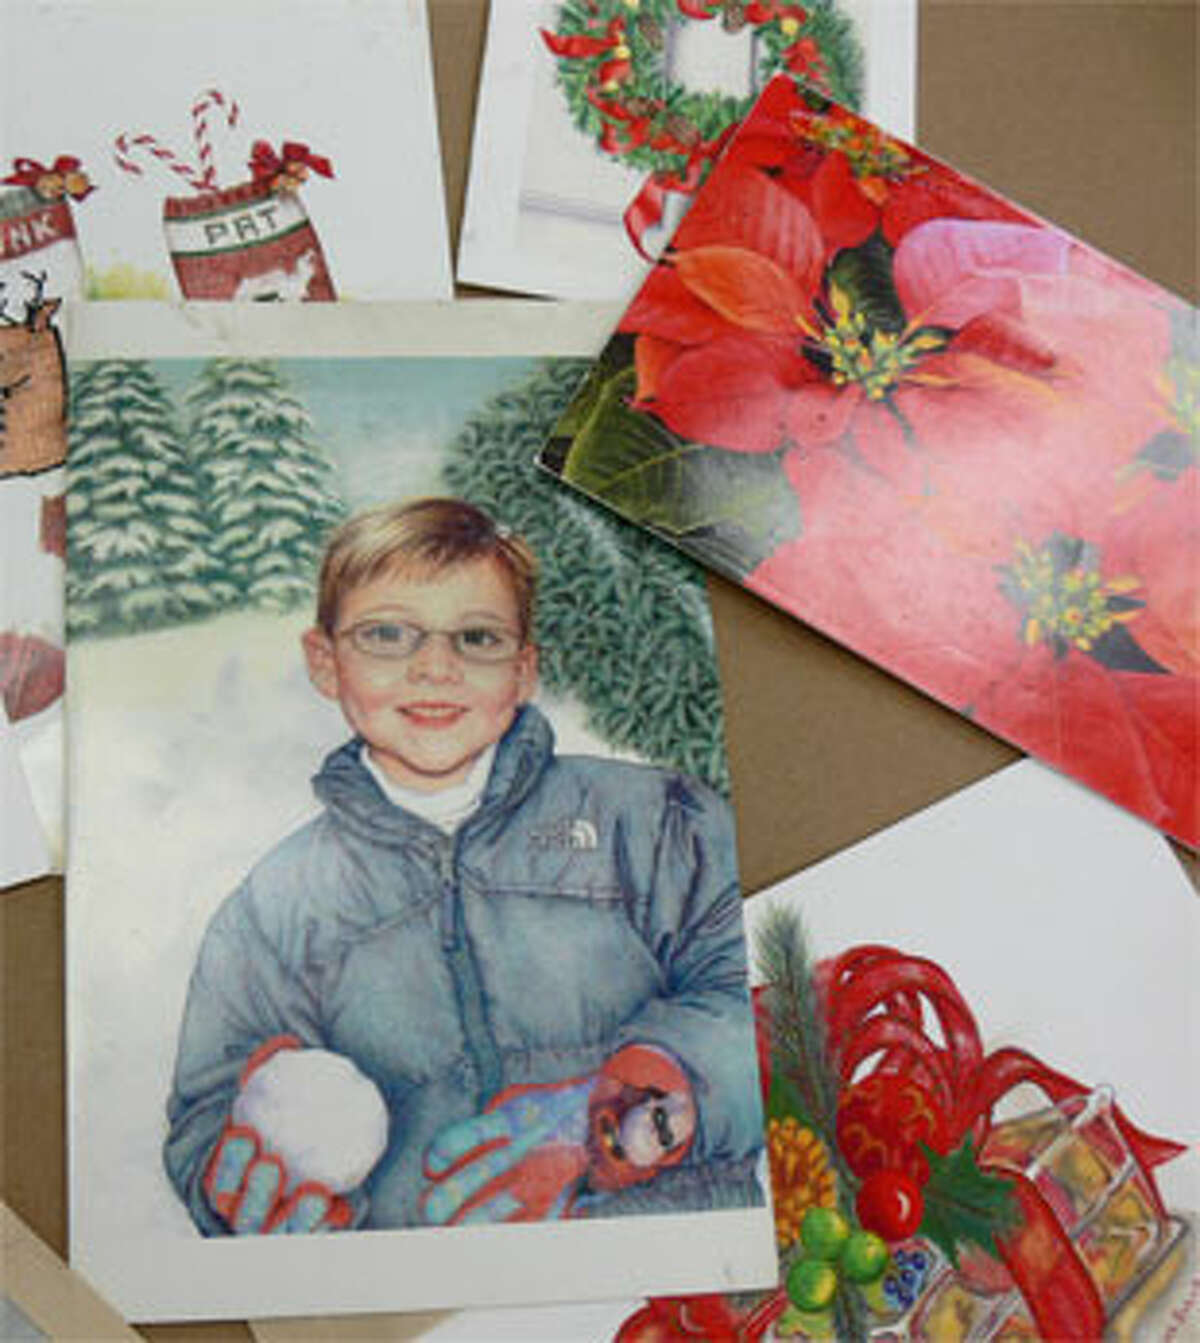 More holiday cards created by Bob Boroski School of Art students through the years that survived the fire.